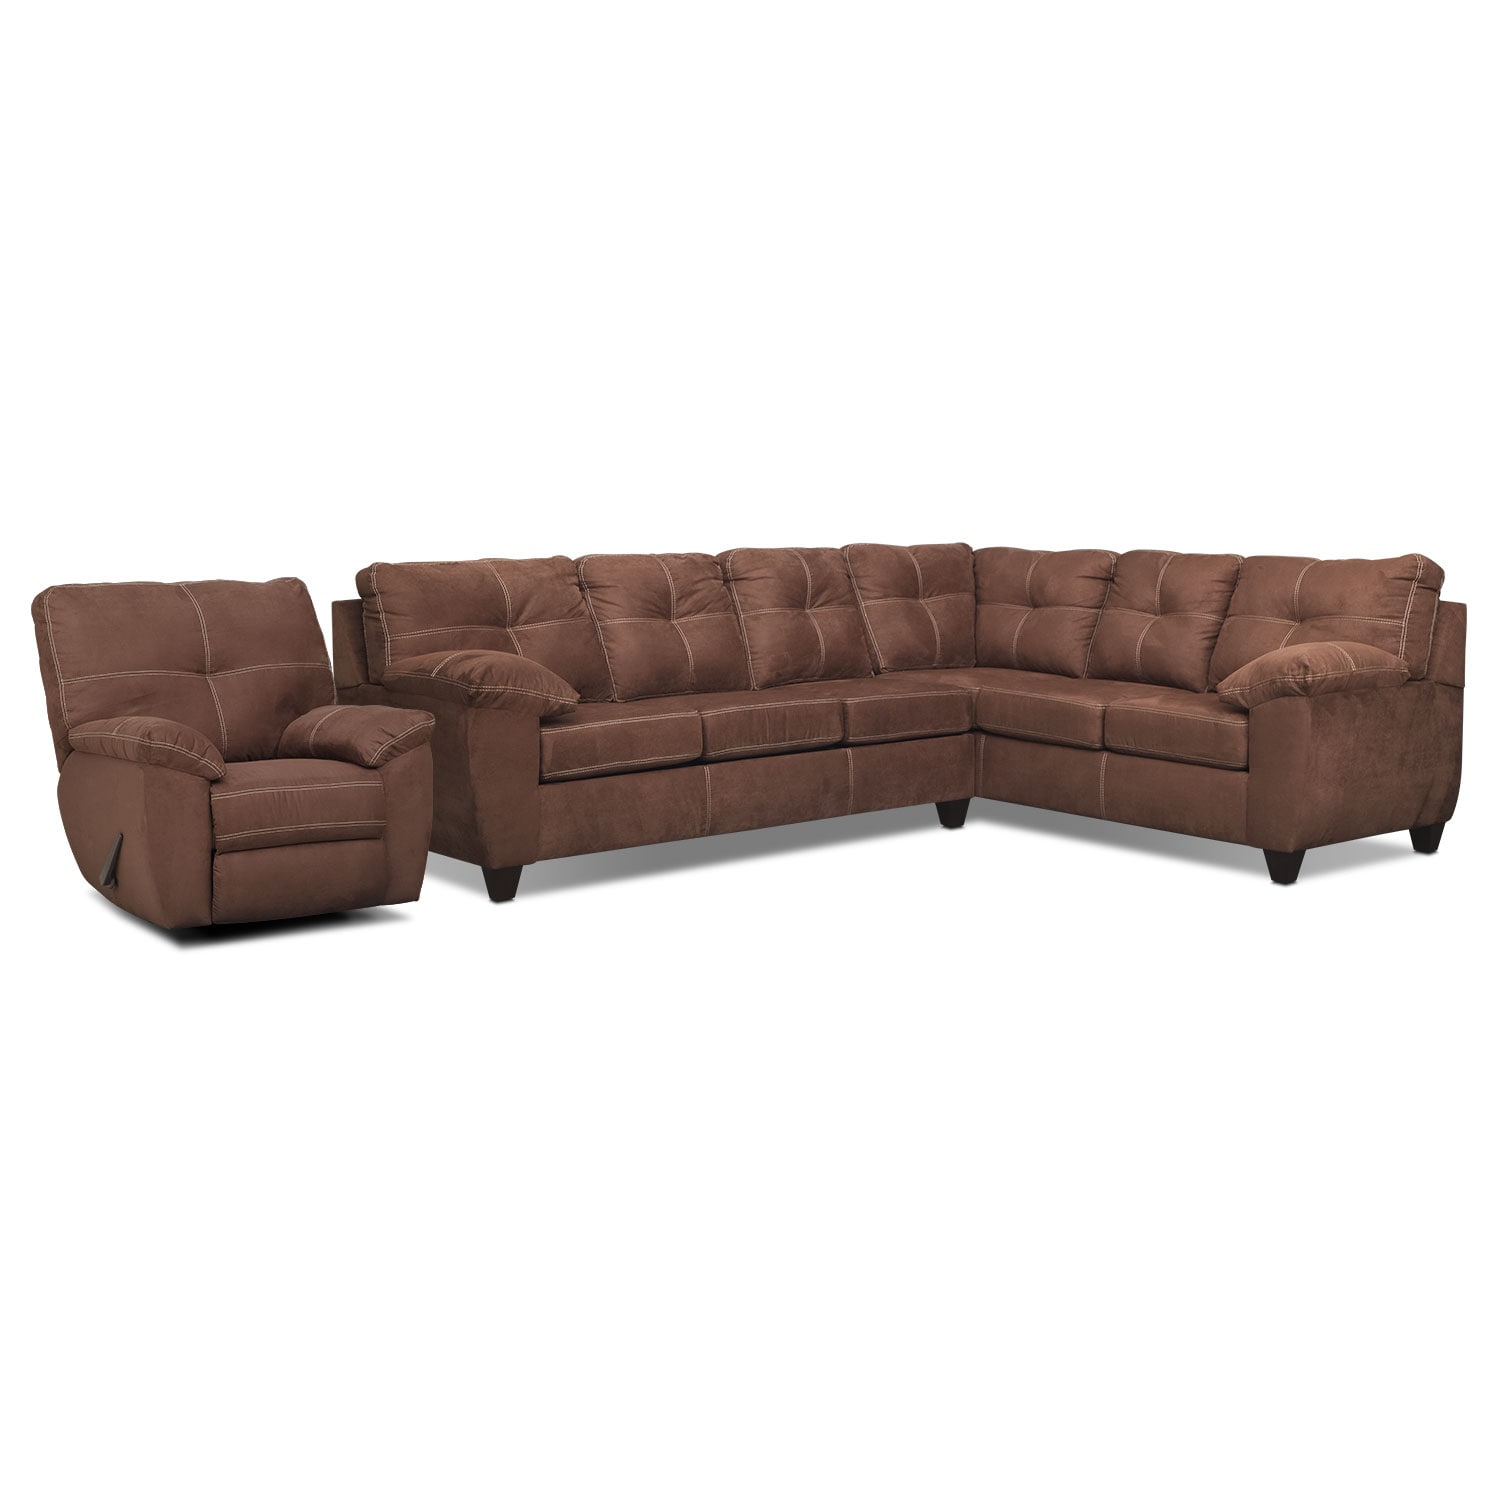 Living Room Furniture - Rialto 2-Piece Sectional with Right-Facing Corner Sofa and Glider Recliner Set - Coffee